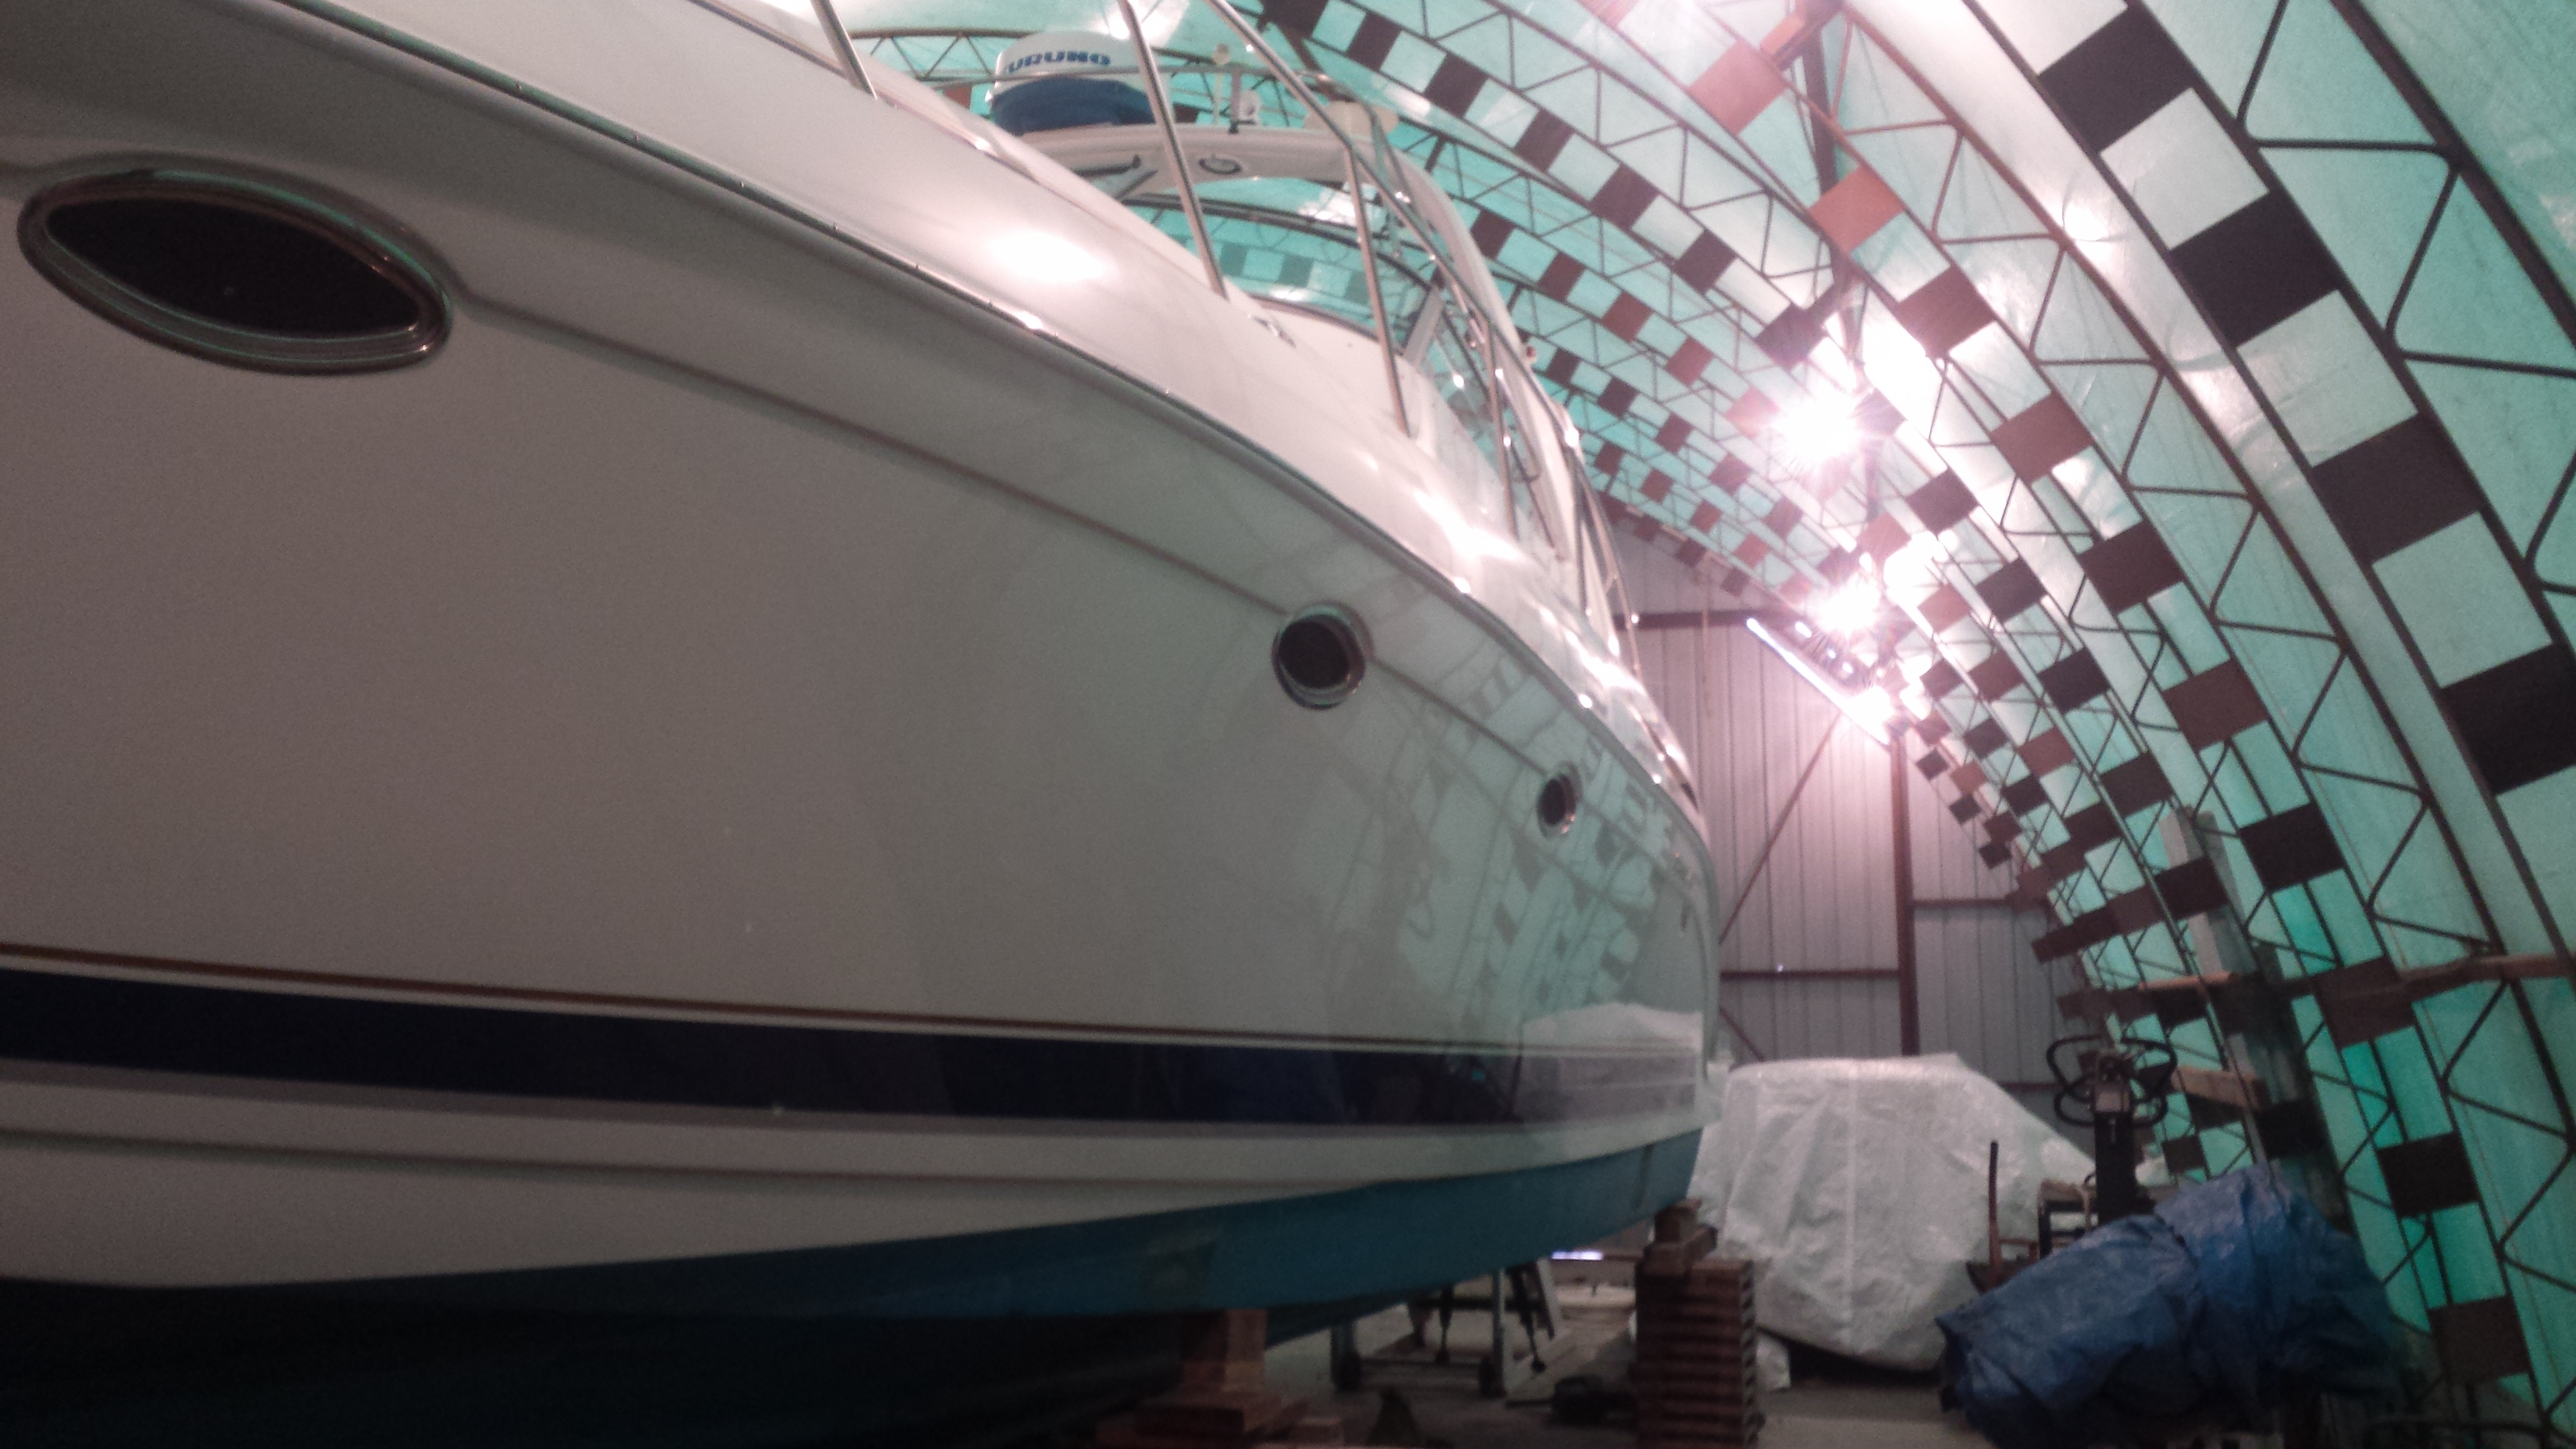 Onsite mobile boat repair and maintenance service including fiberglass repair, gelcoat touchups and a complete detailing polishing and waxing for a Ladner / Delta BC customer.